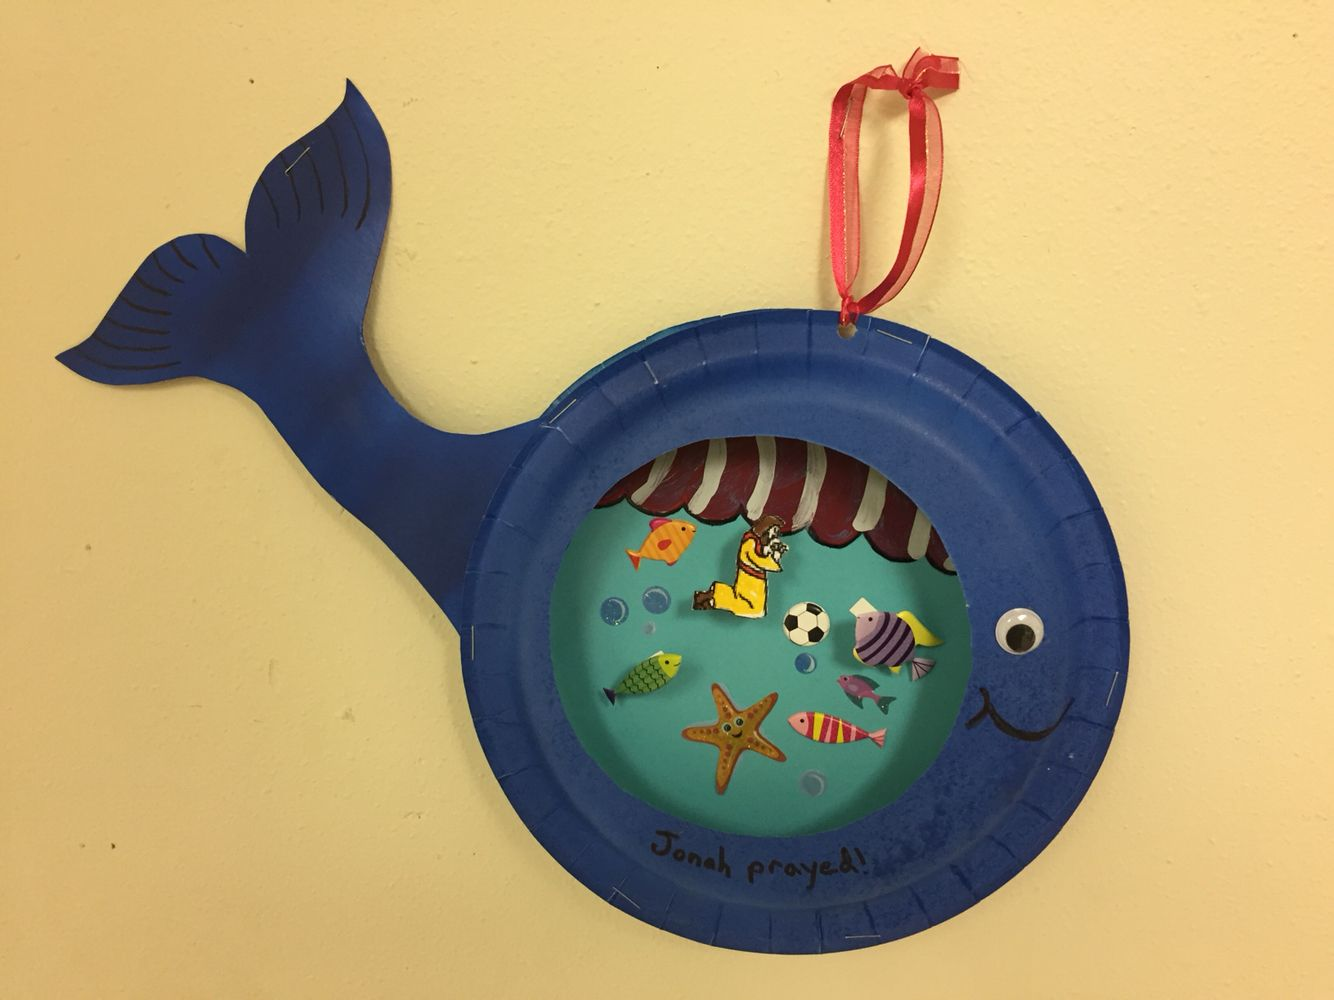 Great Sunday School Craft Idea For Little Kids Teach Jonah And The Whale Use